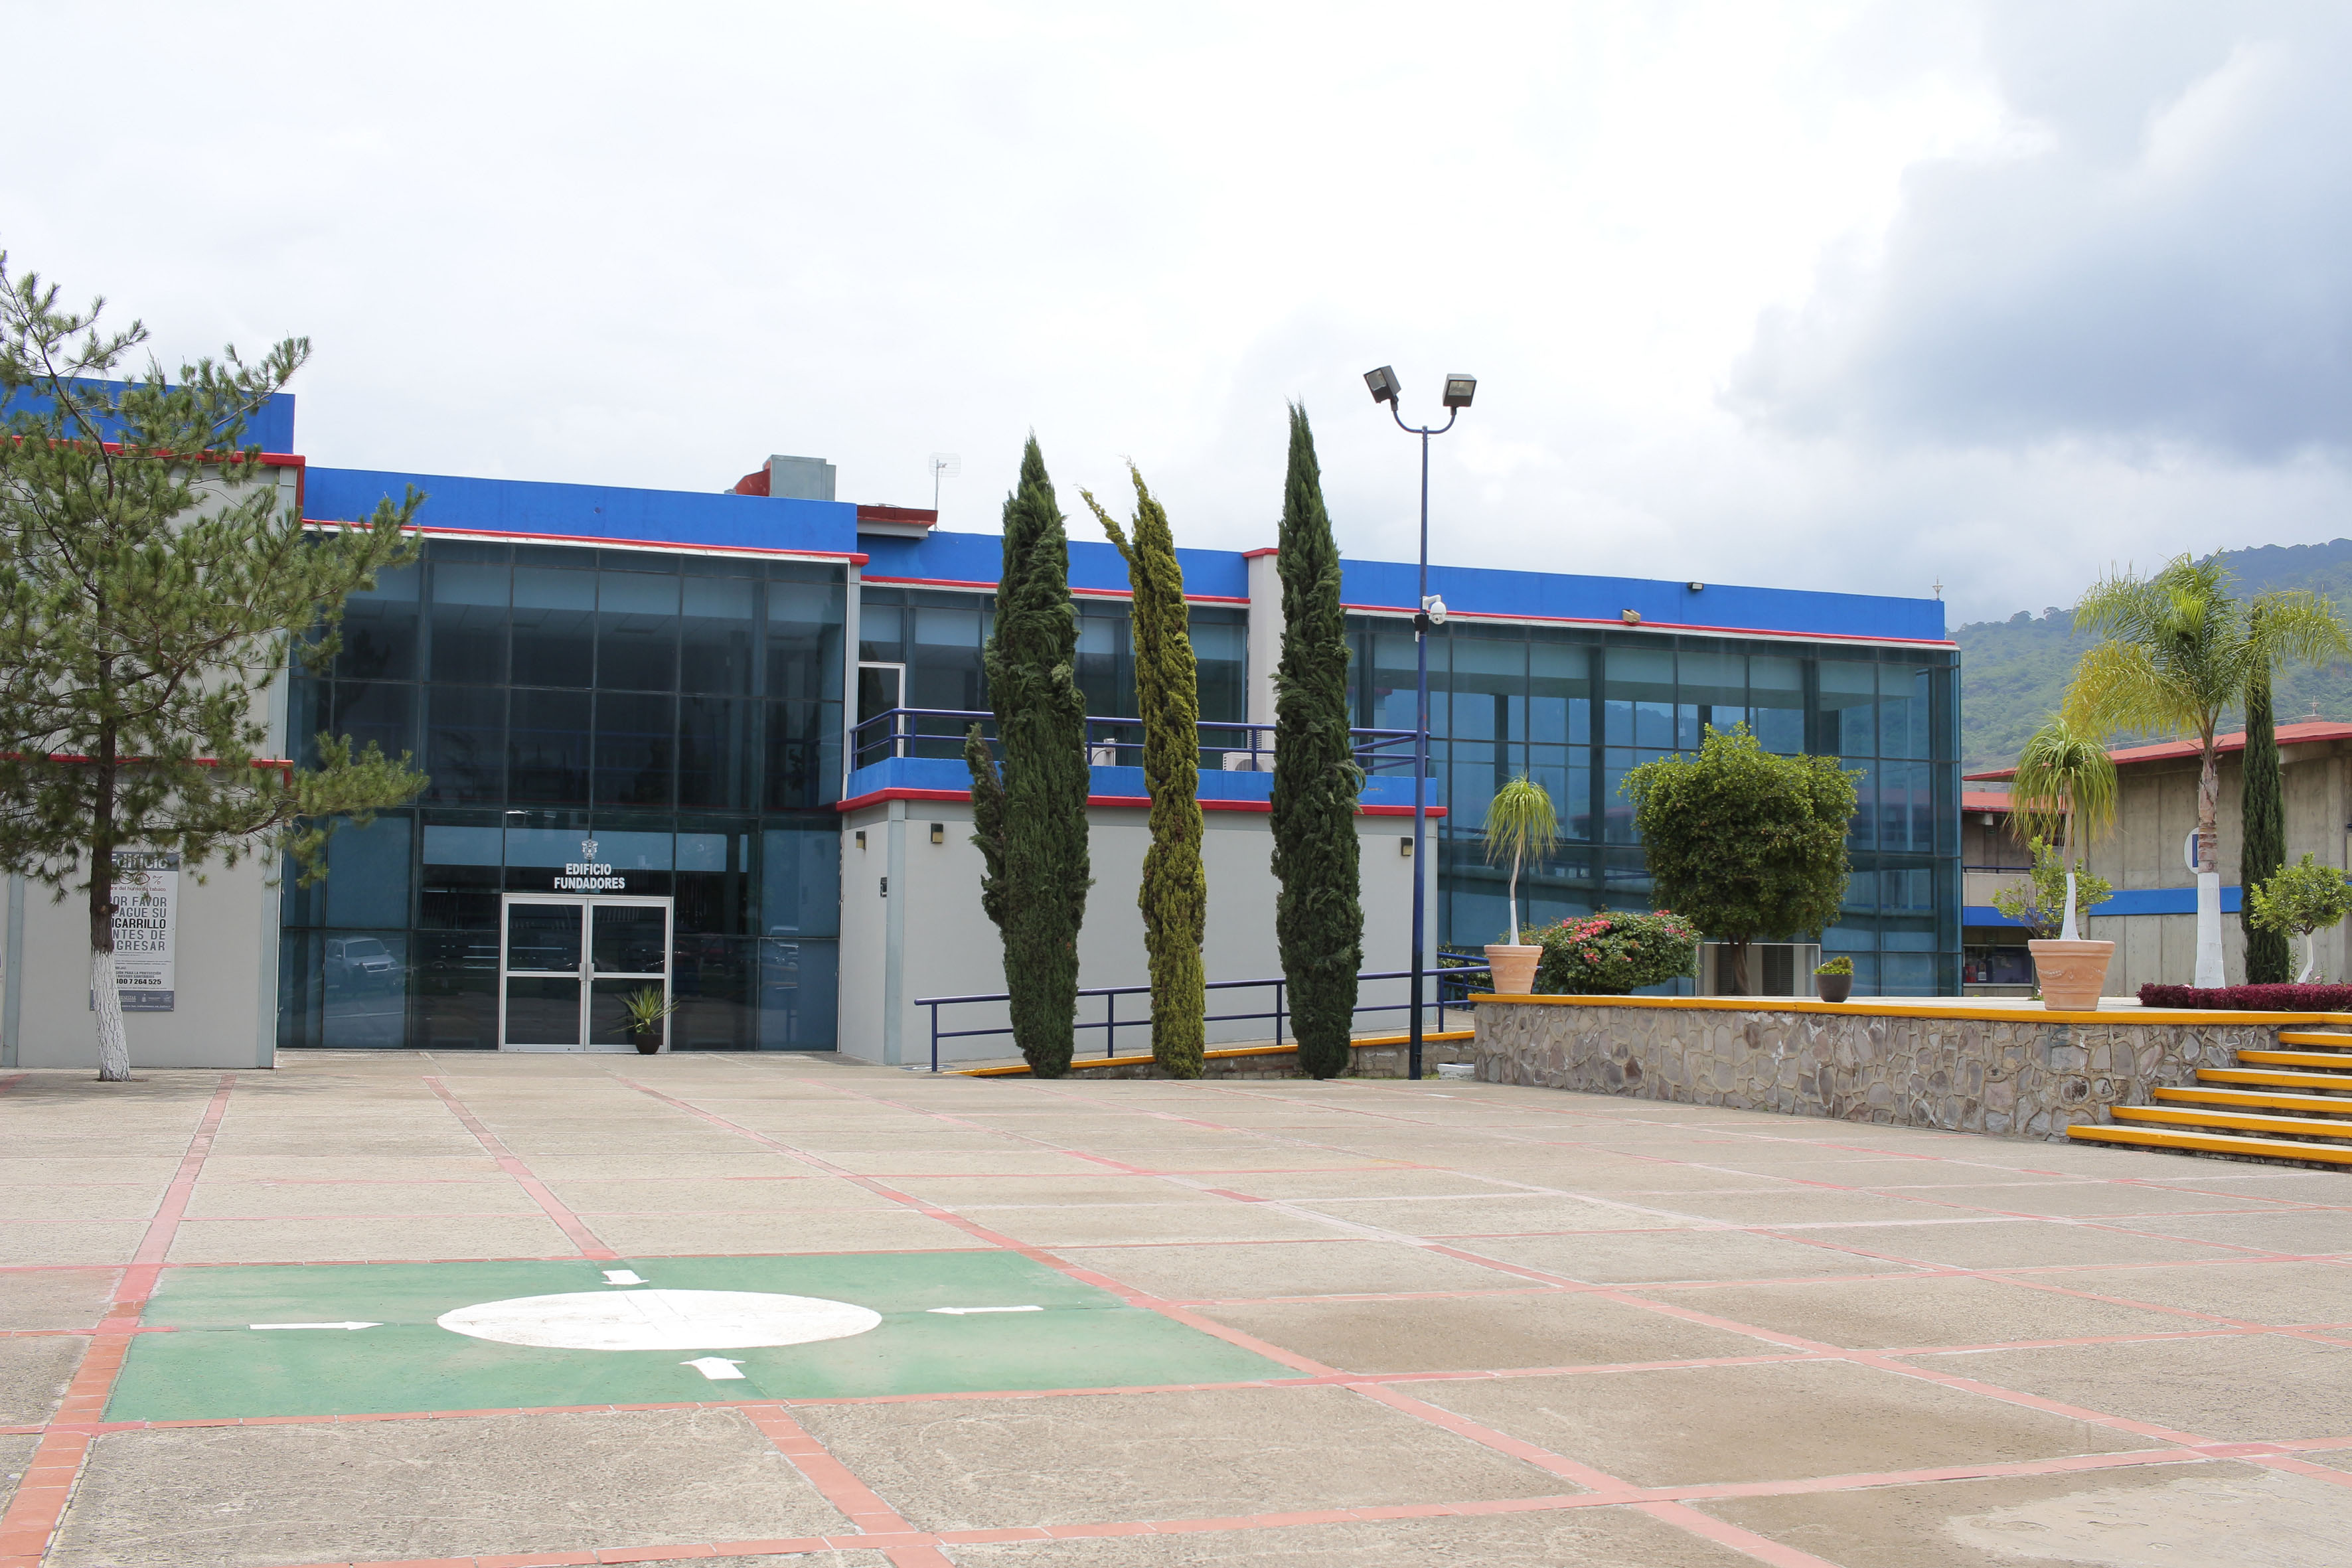 Patio de la Preparatoria de Ciudad Guzman